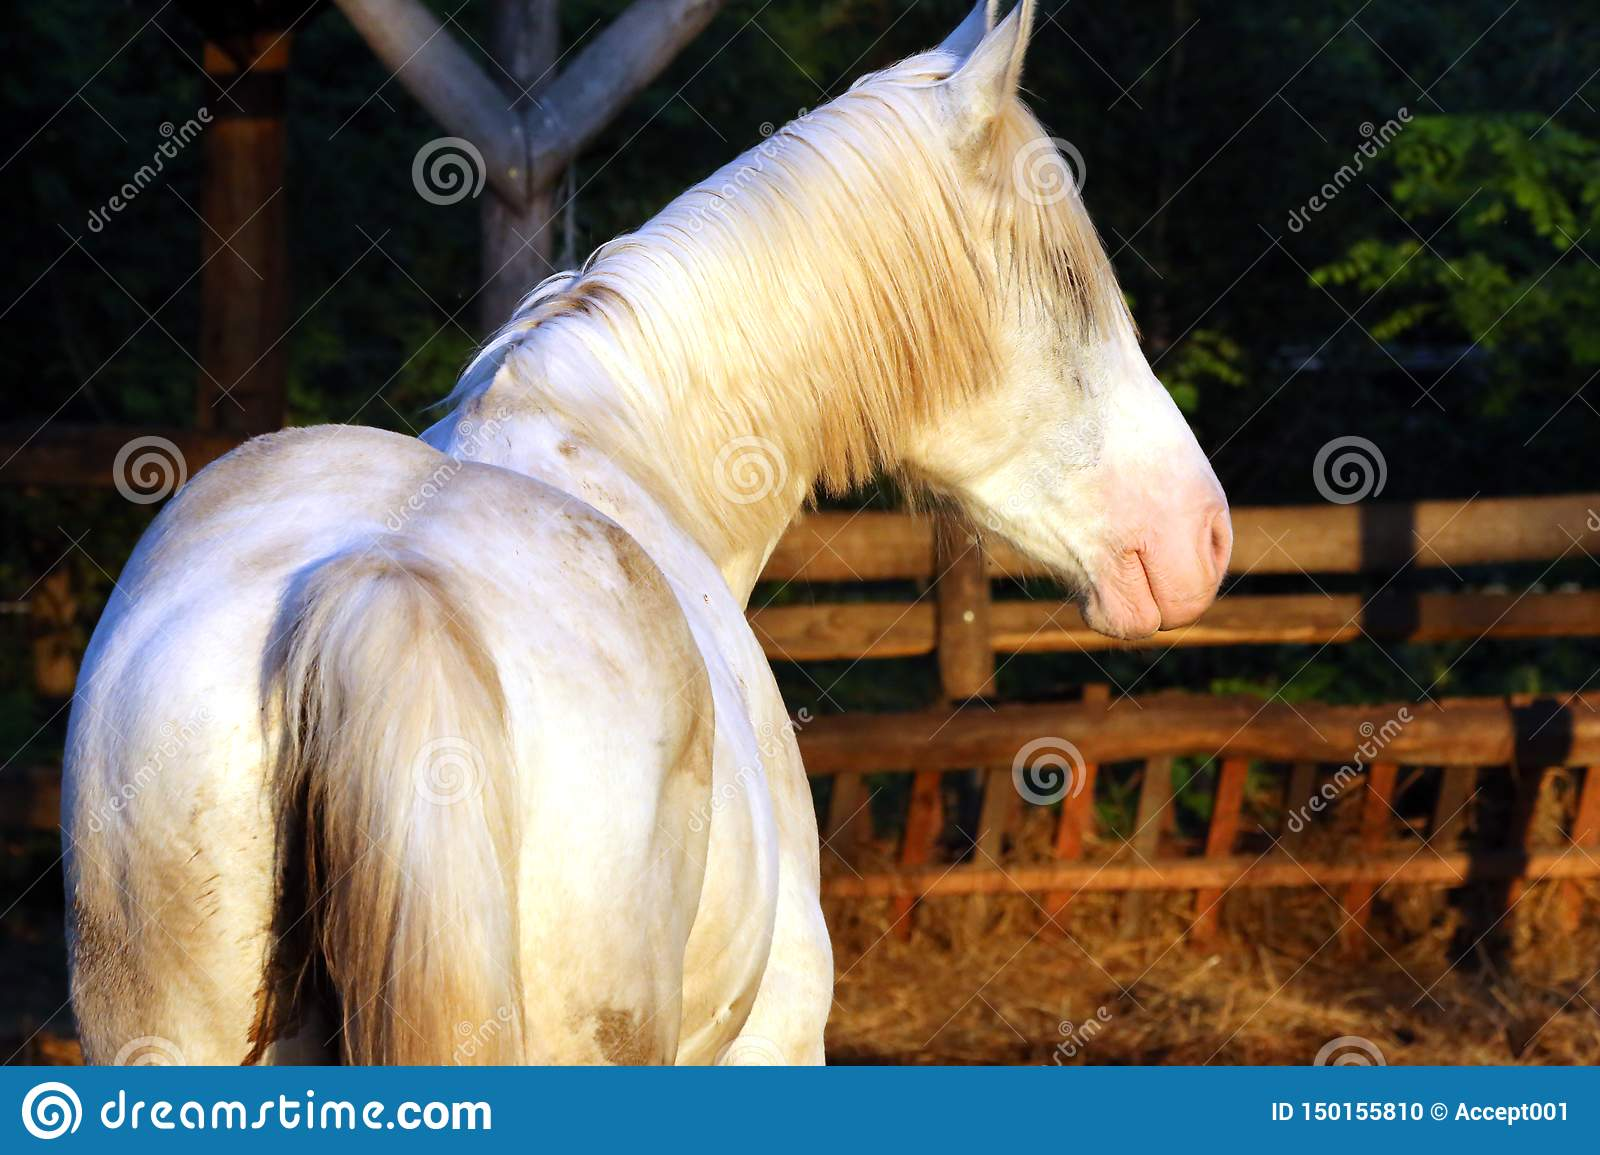 Extreme Closeup Of Beautiful Young Grey Colored Arabian Mare Against Natural Background At Sunset Golden Hour Stock Photo Image Of Animal Horse 150155810